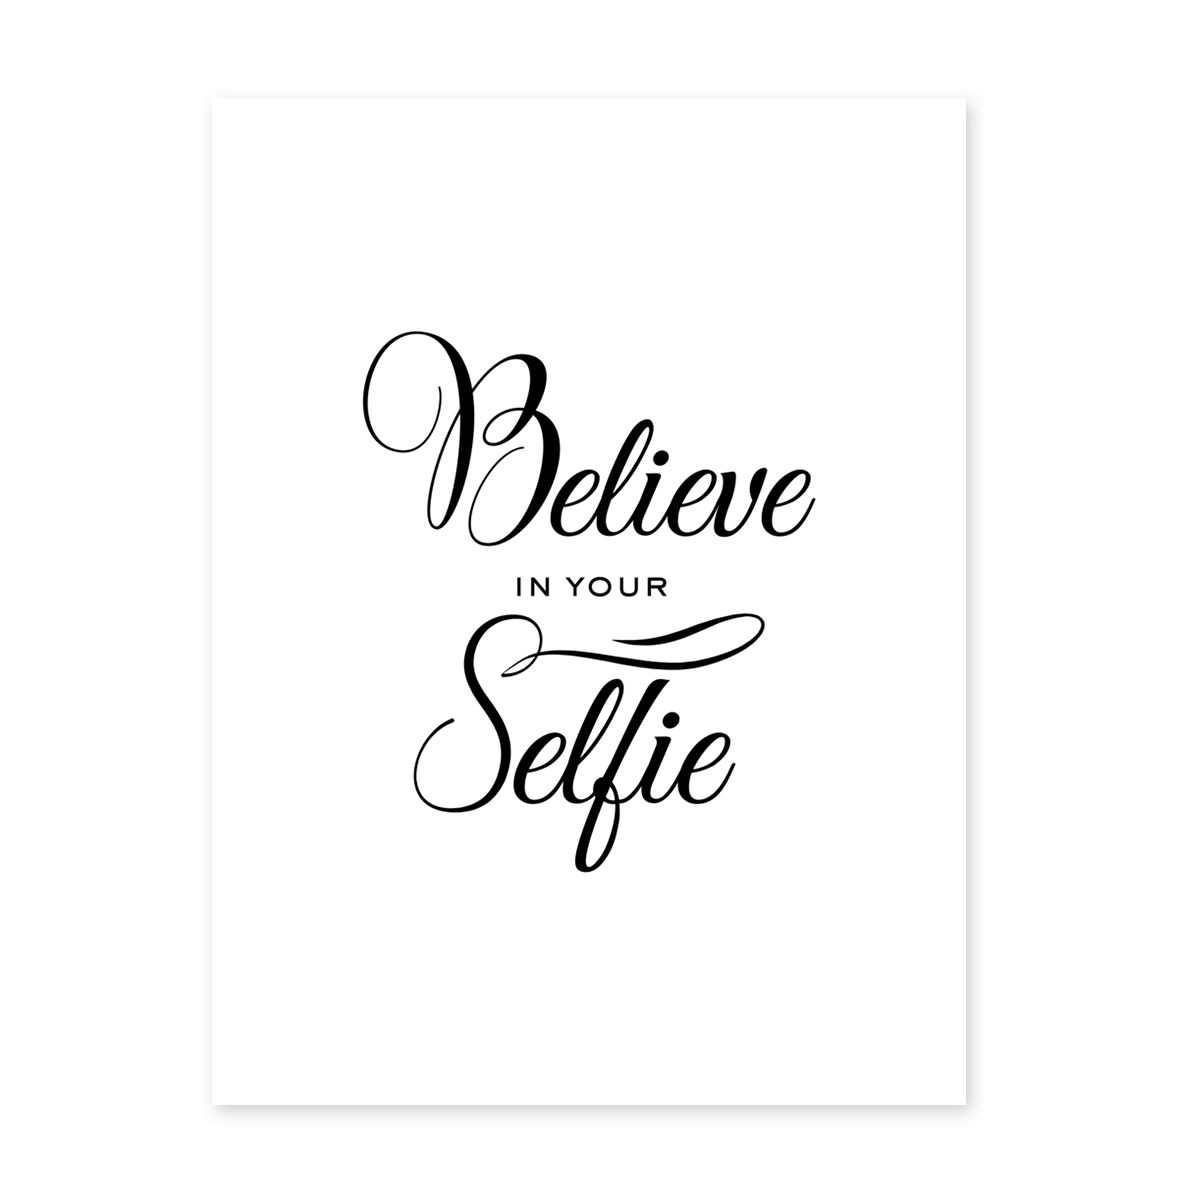 poster 39 selfie 39 30x40 cm schwarz weiss motiv fun spruch. Black Bedroom Furniture Sets. Home Design Ideas